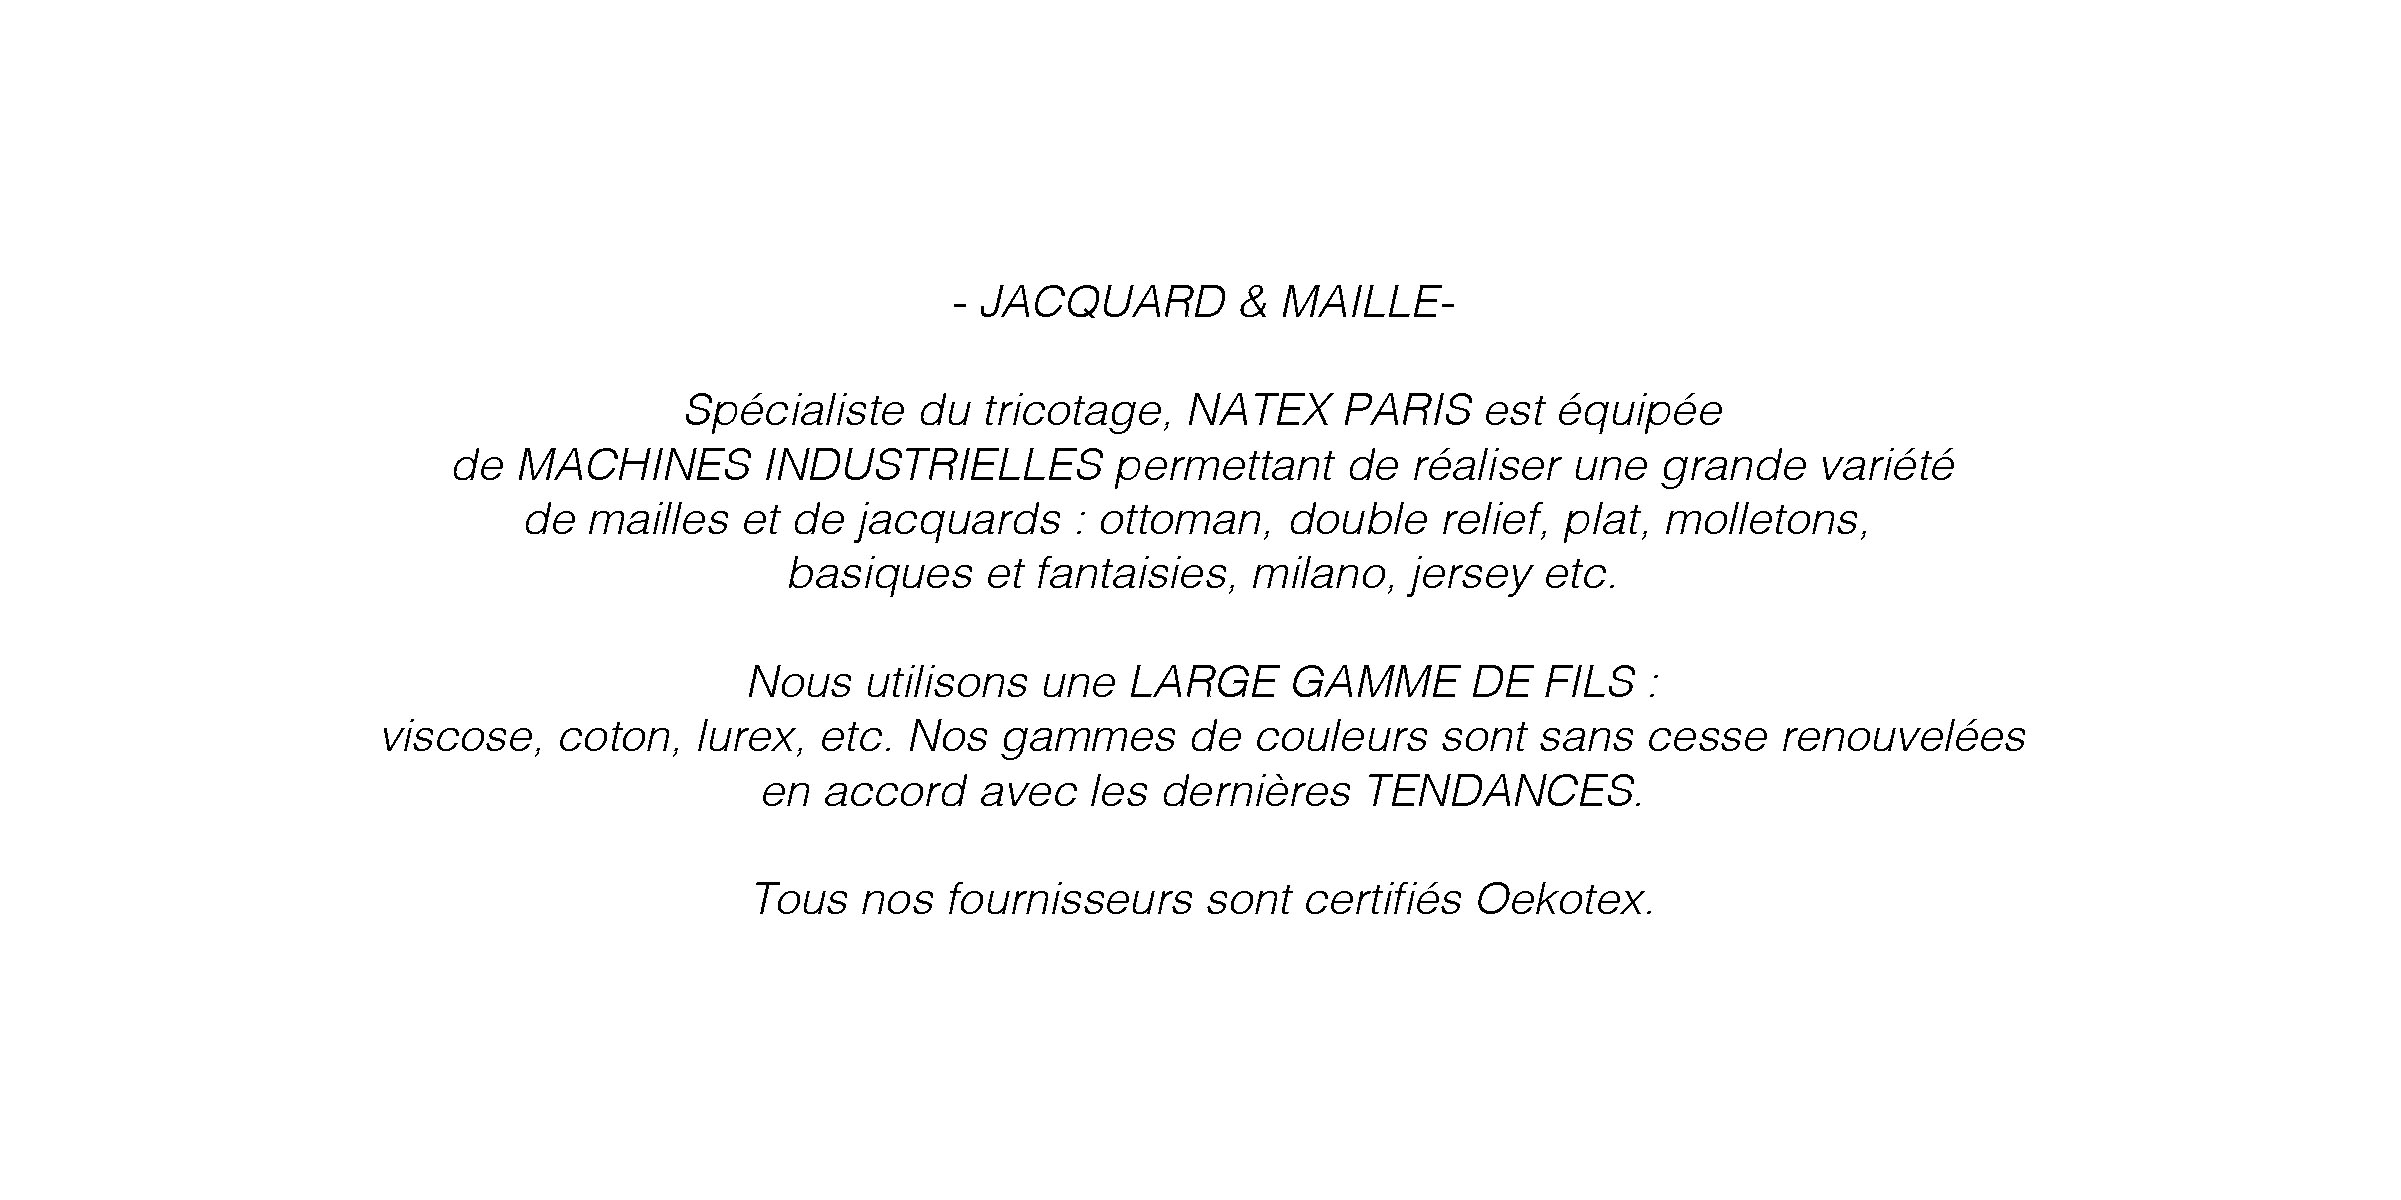 Jacquard&maille-01